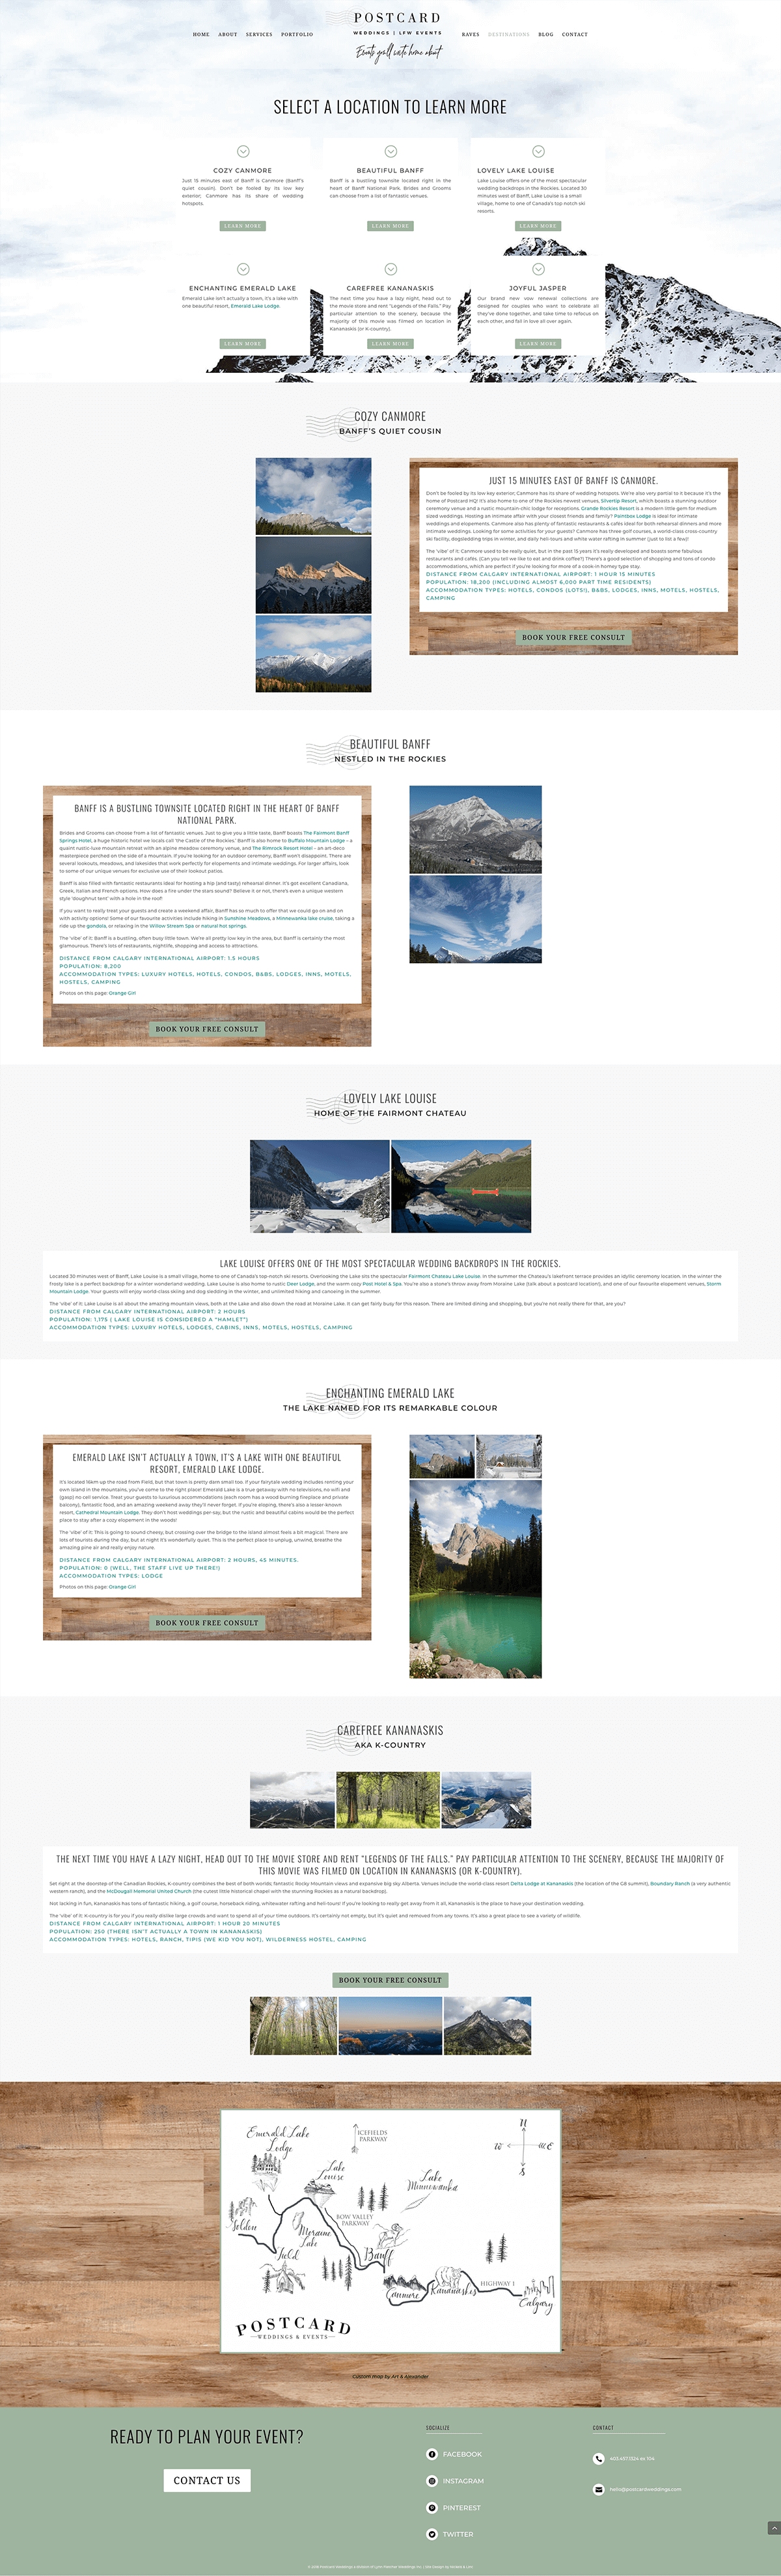 destinations-page-Postcard Weddings-website-design